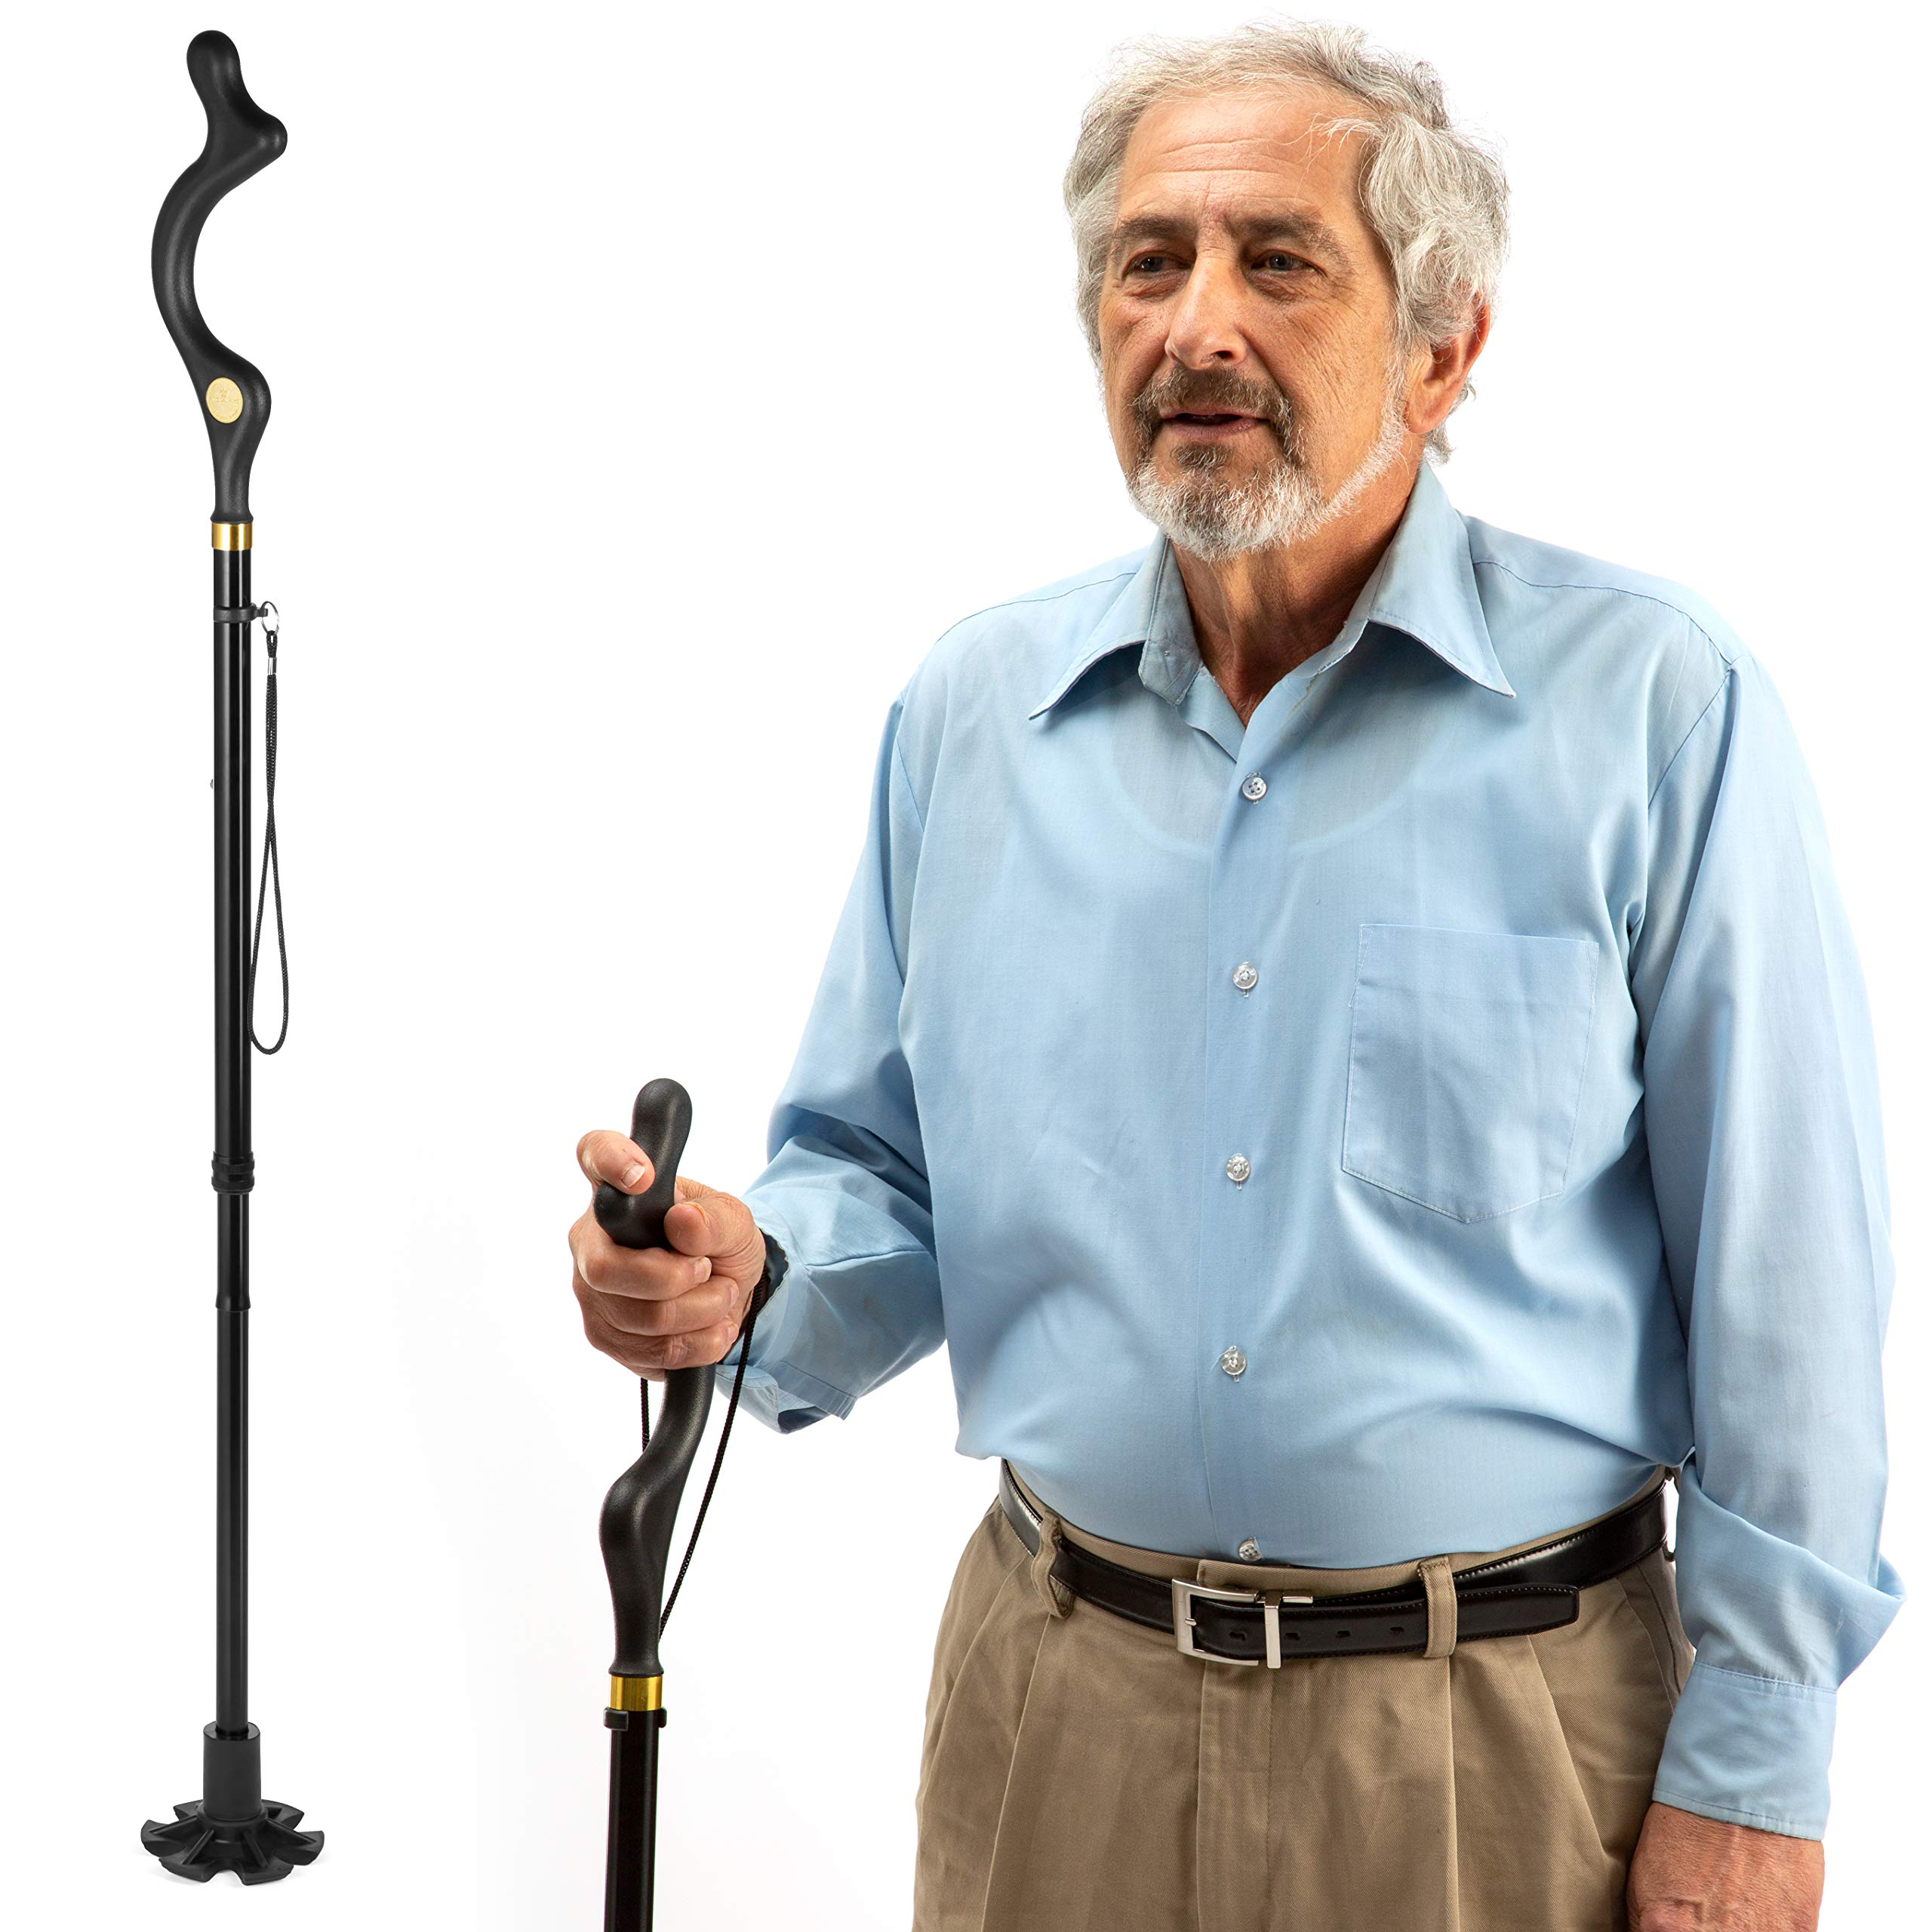 walking cane for men and walking canes for women special balancing - cane walking stick have 10 Adjustable Heights - self standing folding cane, portable collapsible cane, Comfortable